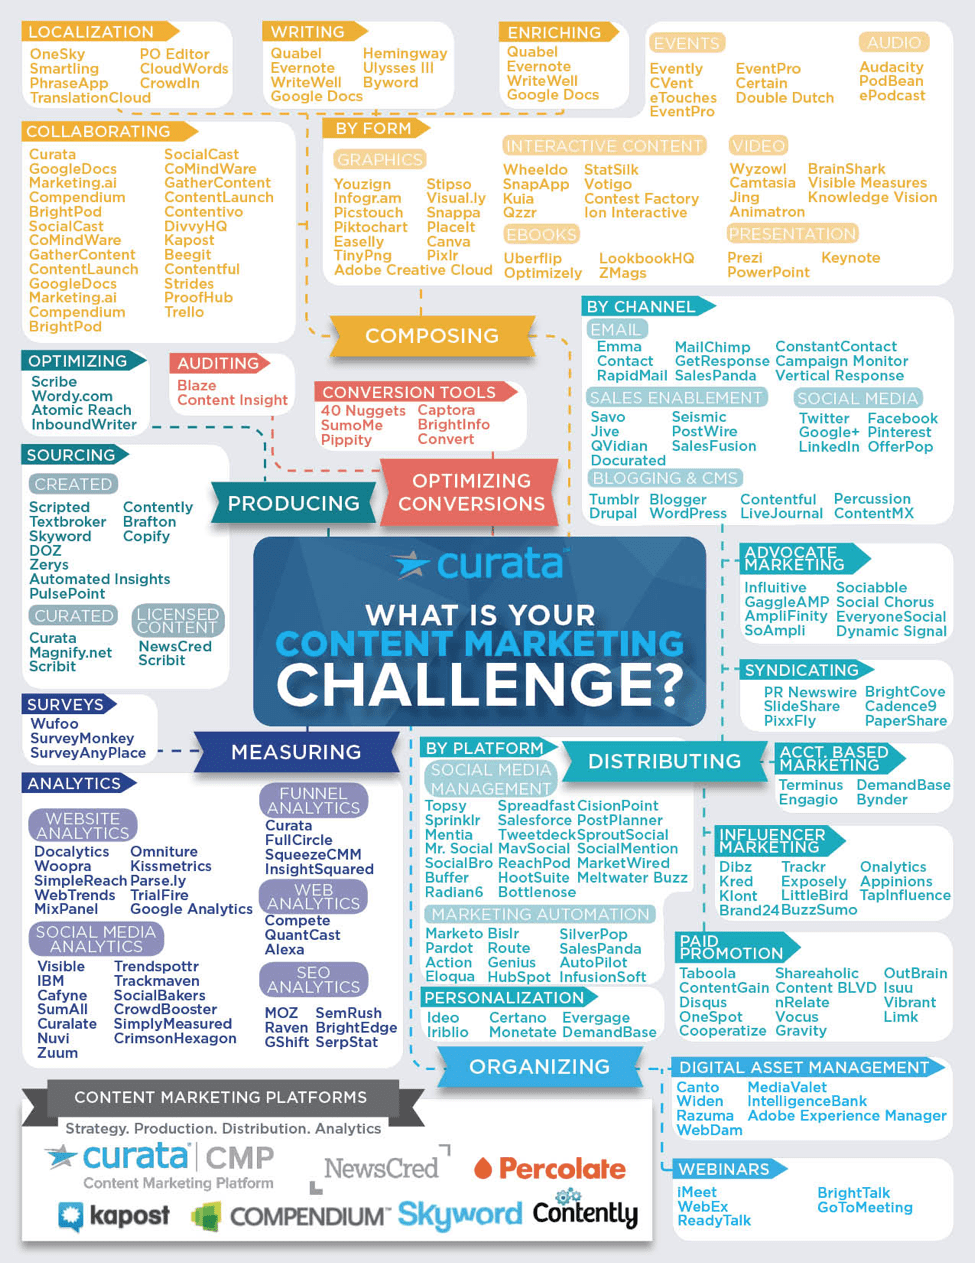 What is your content marketing challenge